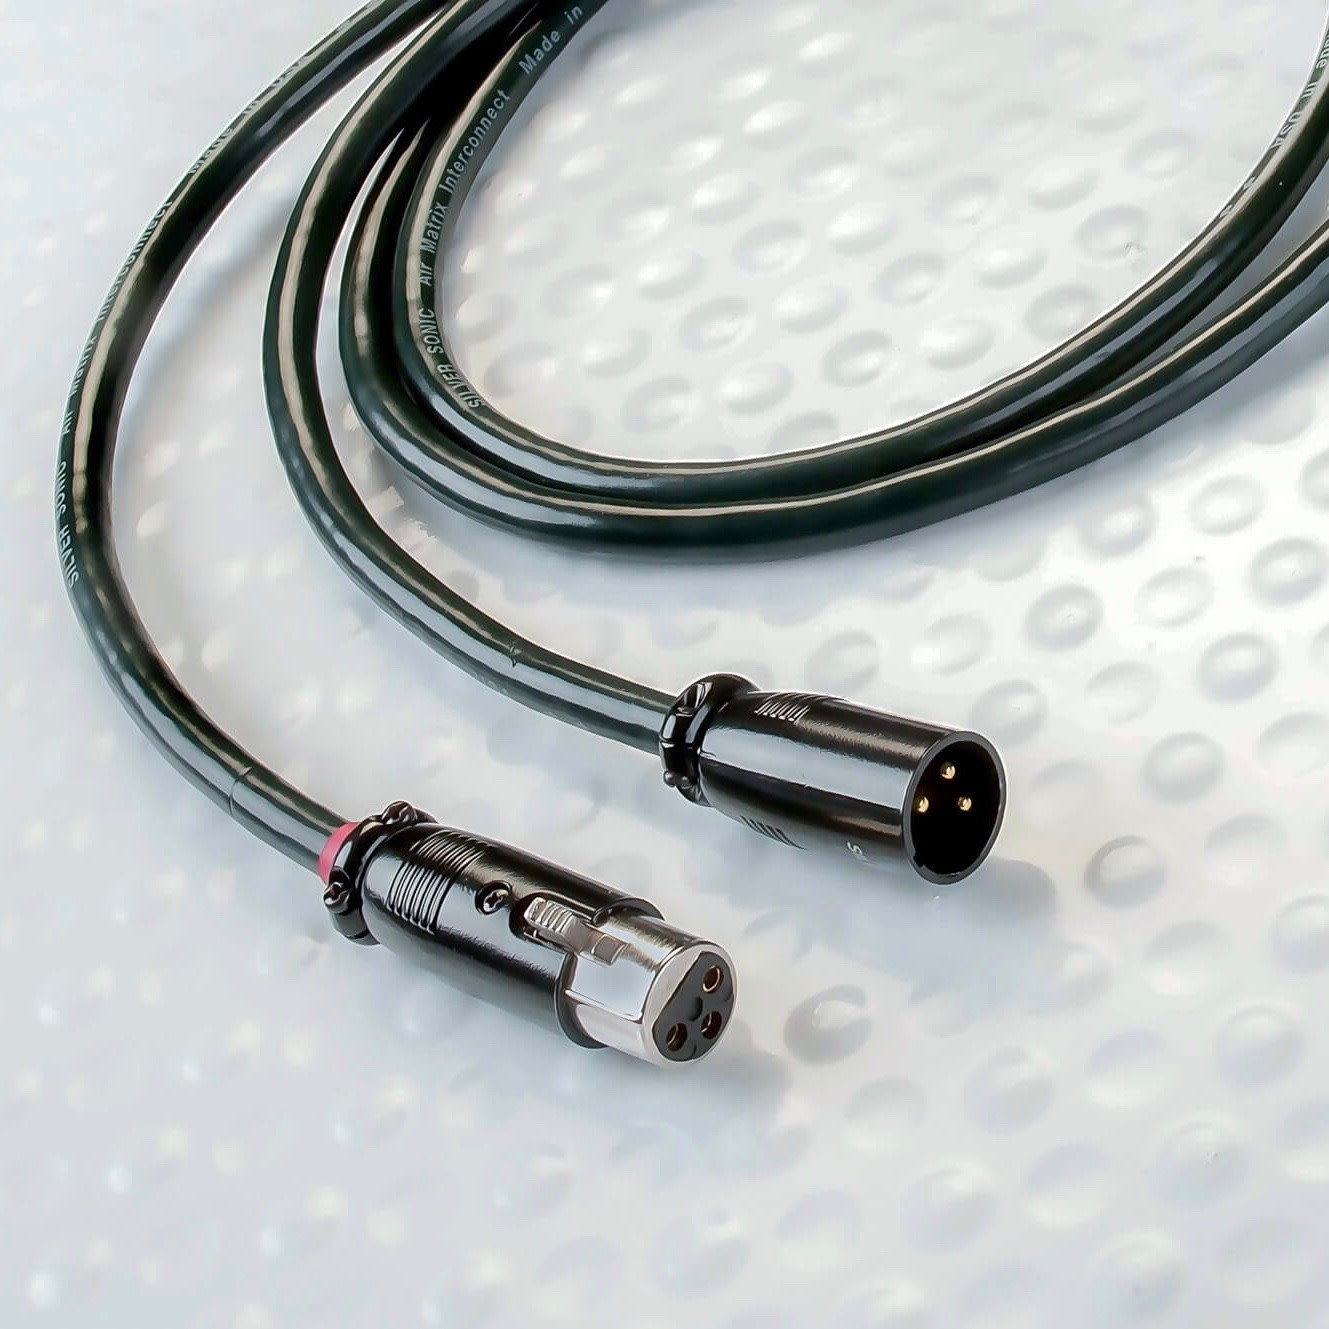 DH Labs Air Matrix Interconnect Cables